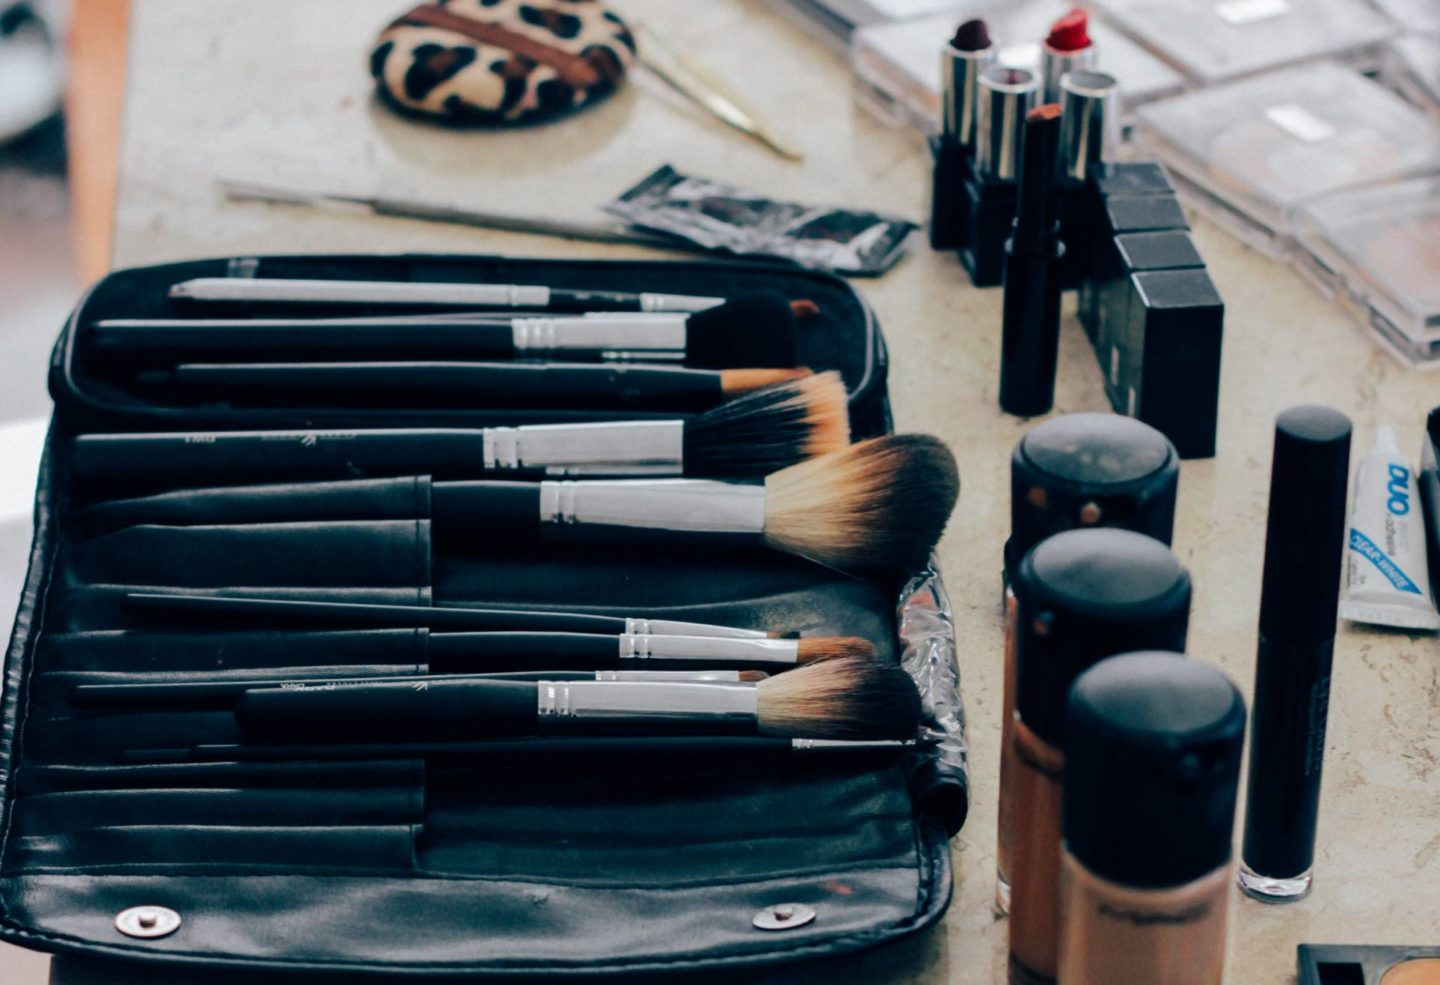 Kit essentials every budding make-up artist needs